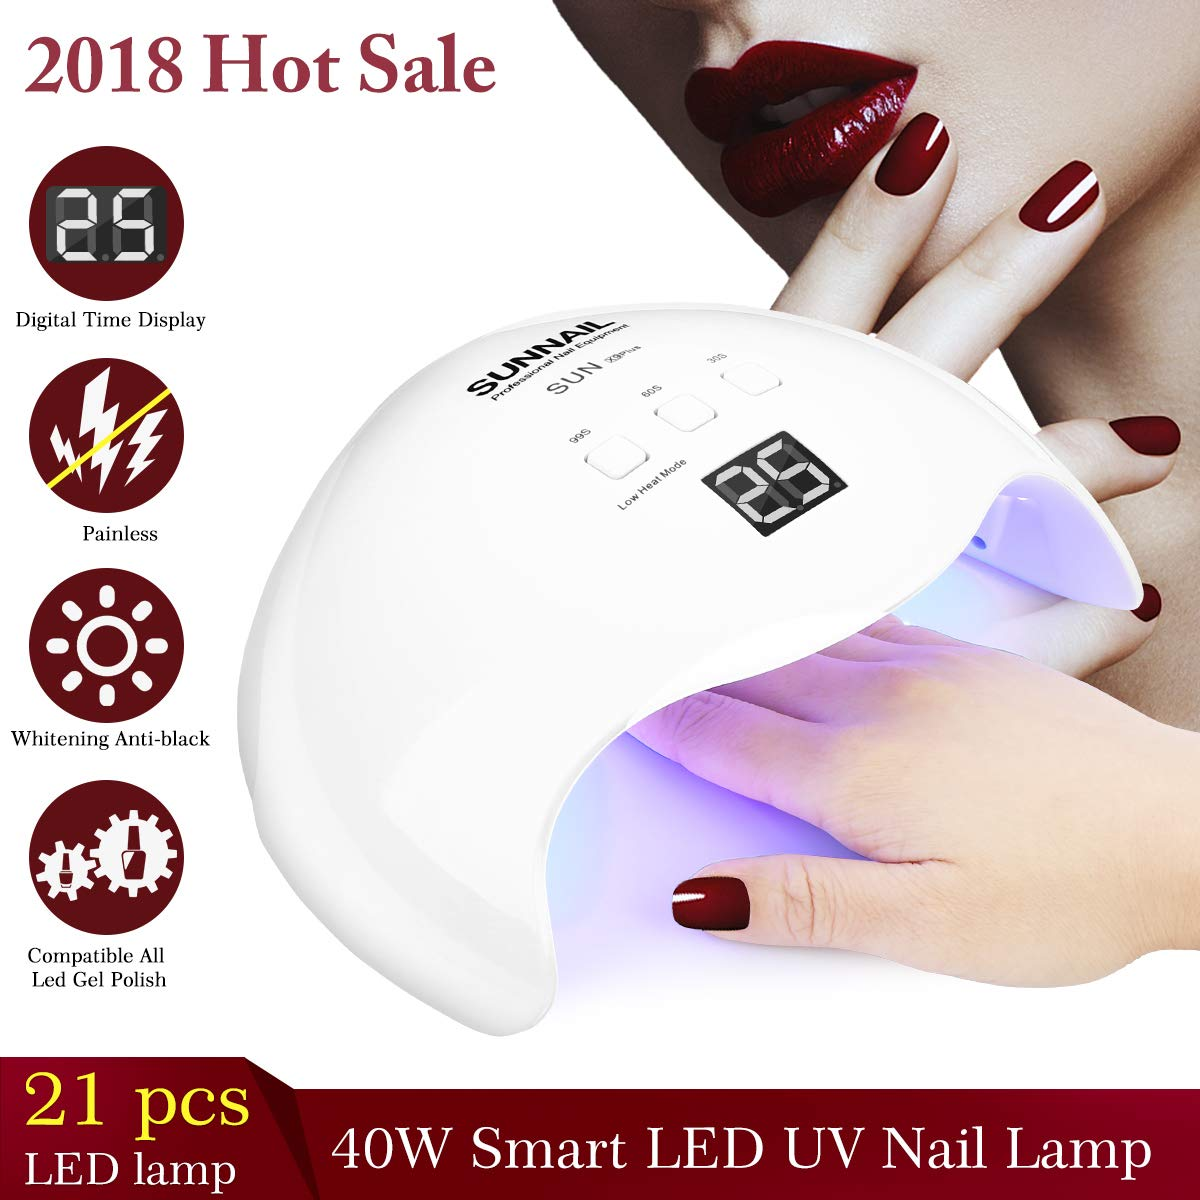 Amazon.com : Nail Lamp, UV LED Curing Lamps Nail Dryers for Gel ...